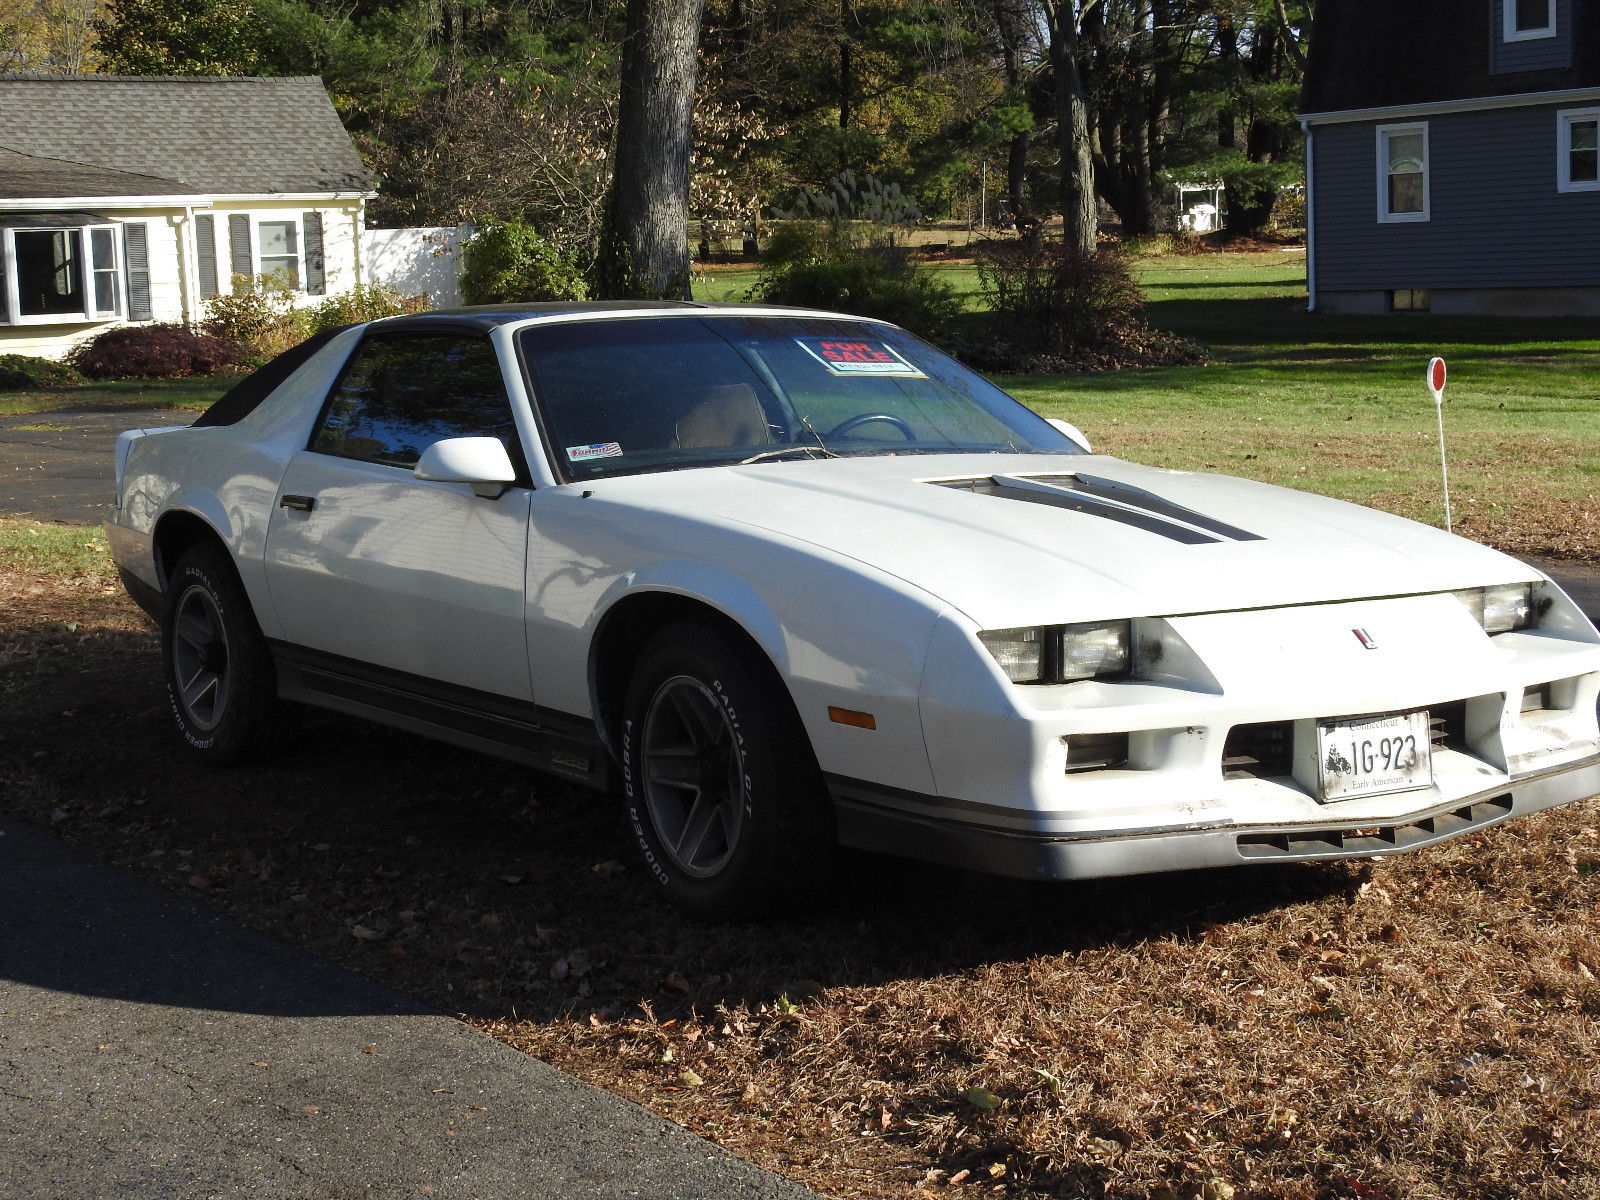 Amazing 1983 Chevrolet Camaro Z-28 For sale is my Z-28 9 year old  restoration No rust or rot Painted HOK Ice Wh 2017 2018